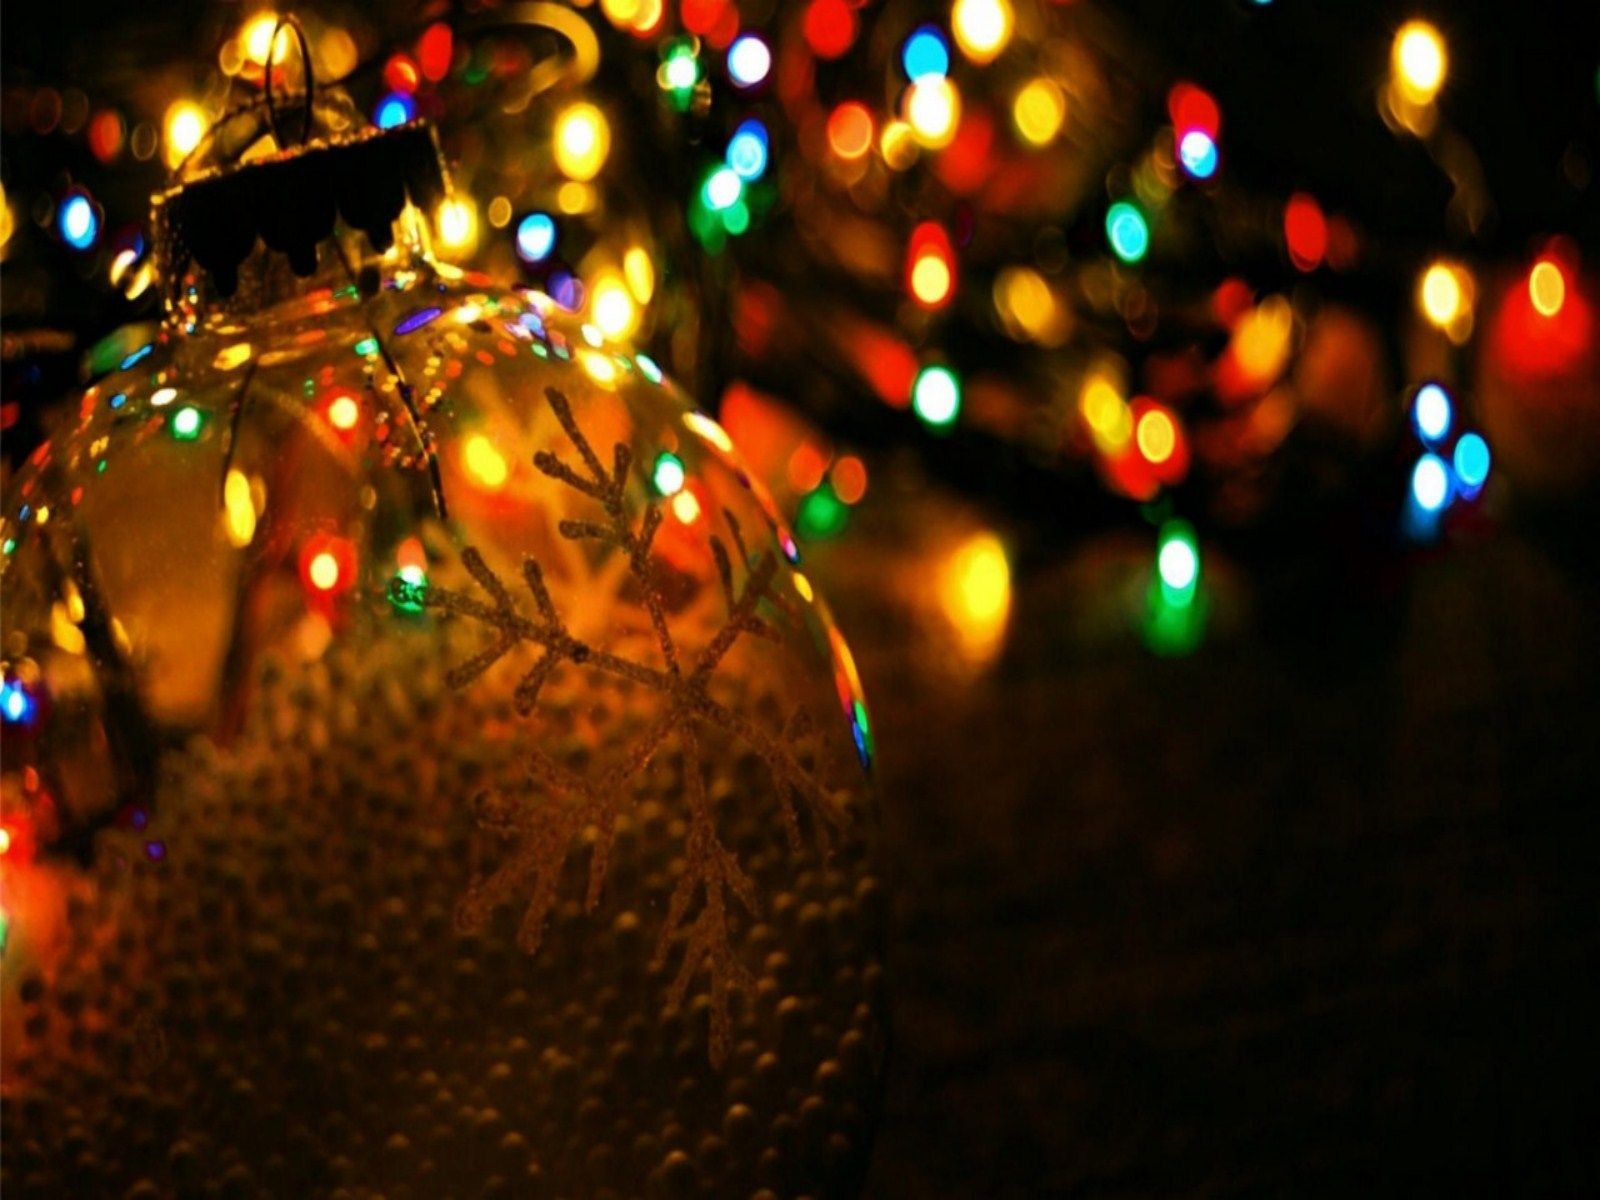 Colorful Christmas Lights Background.Christmas Lights Photos Christmas Lights Background